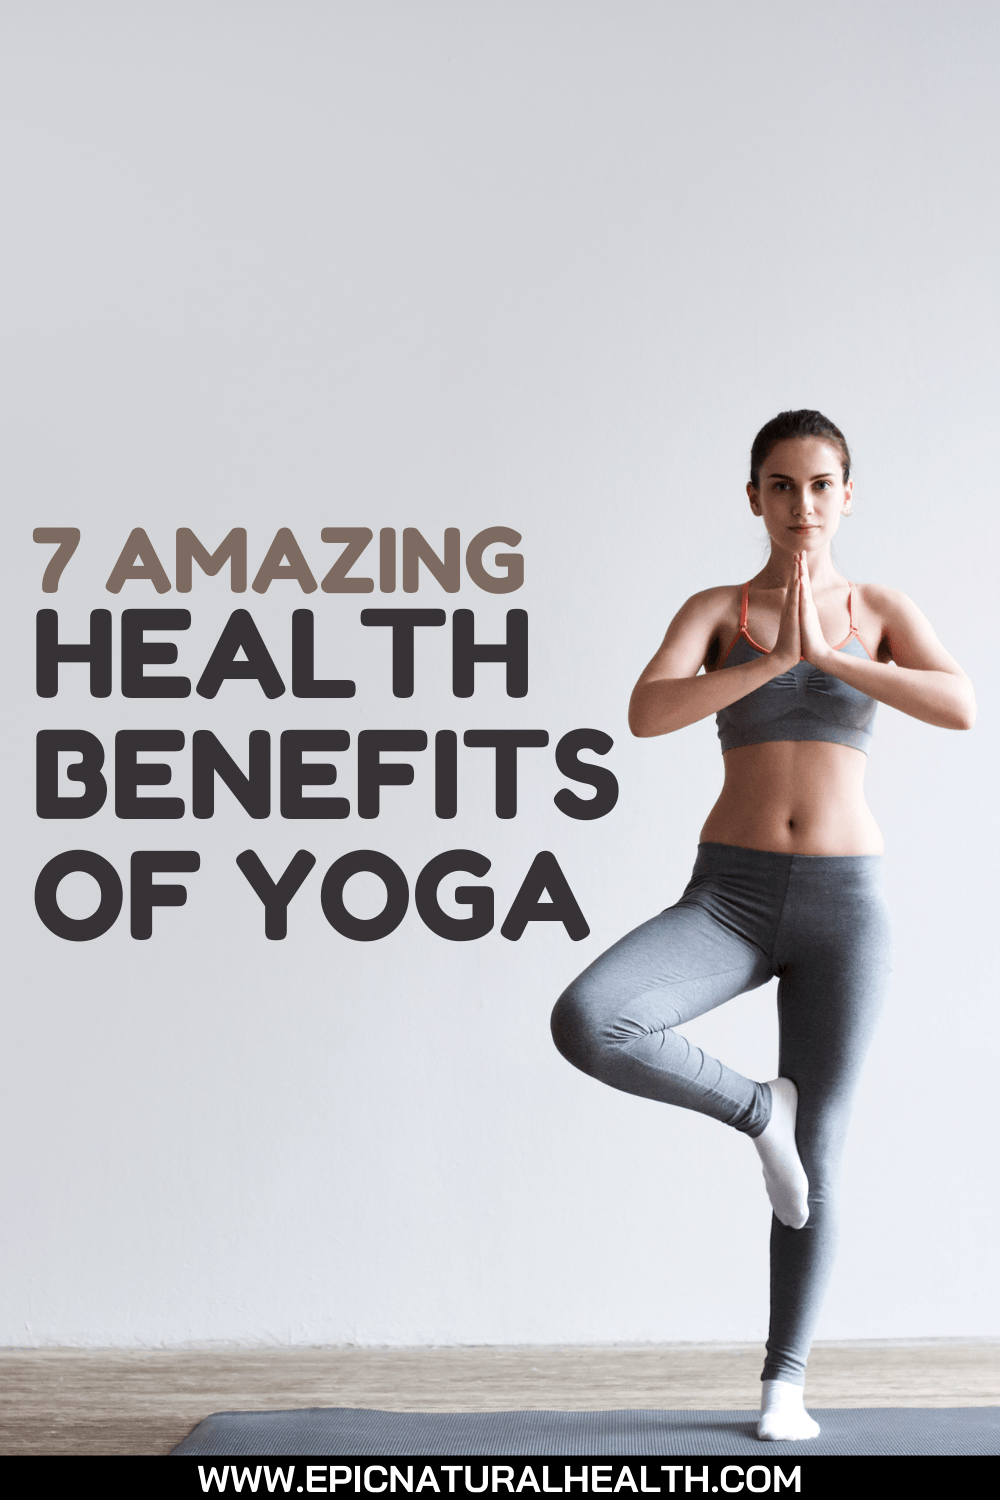 7 amazing health benefits of yoga